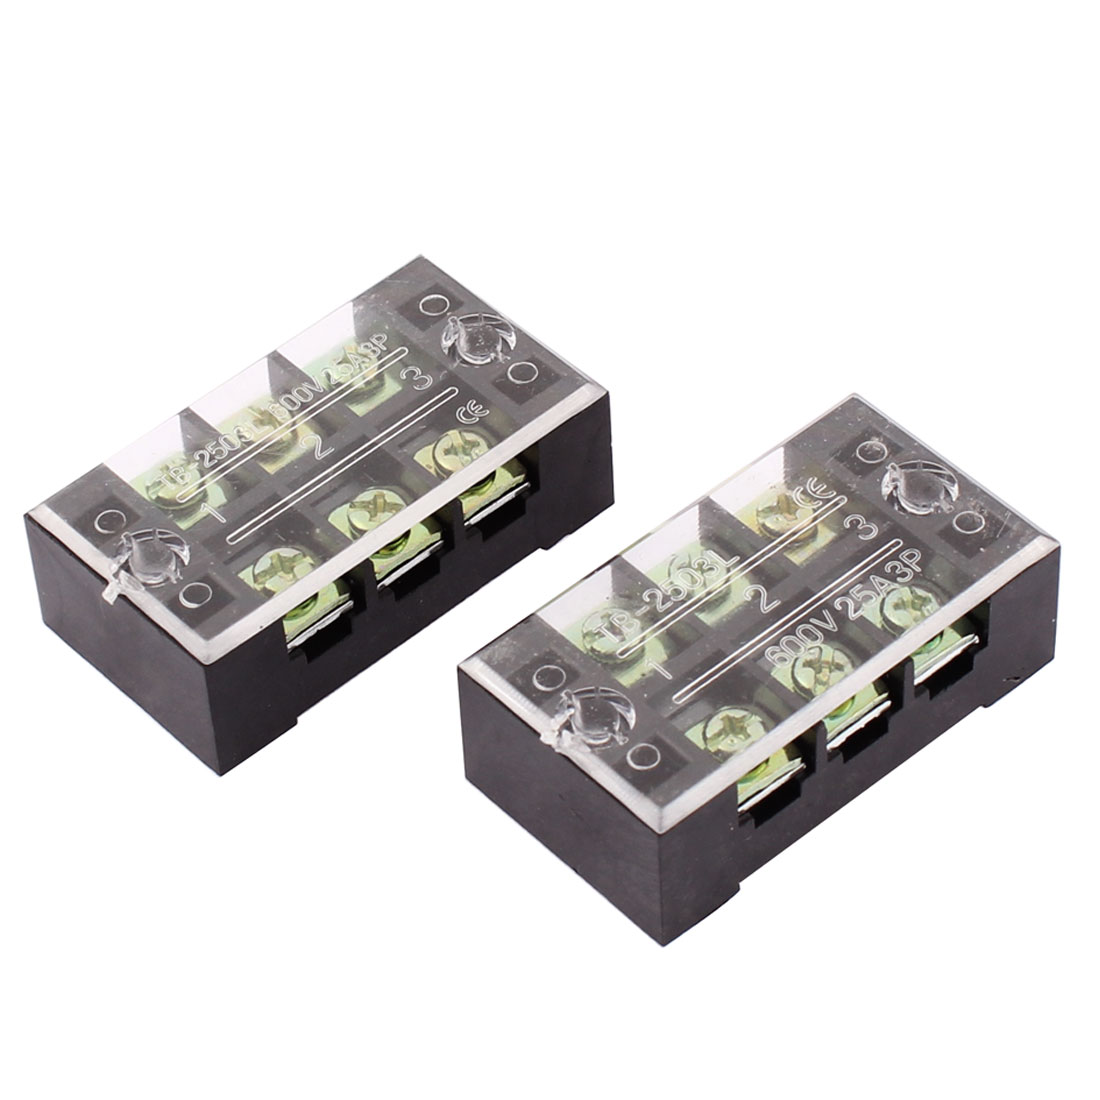 2pcs 600V 25A Electric 3 Positions Screw Terminal Barrier Block Strip